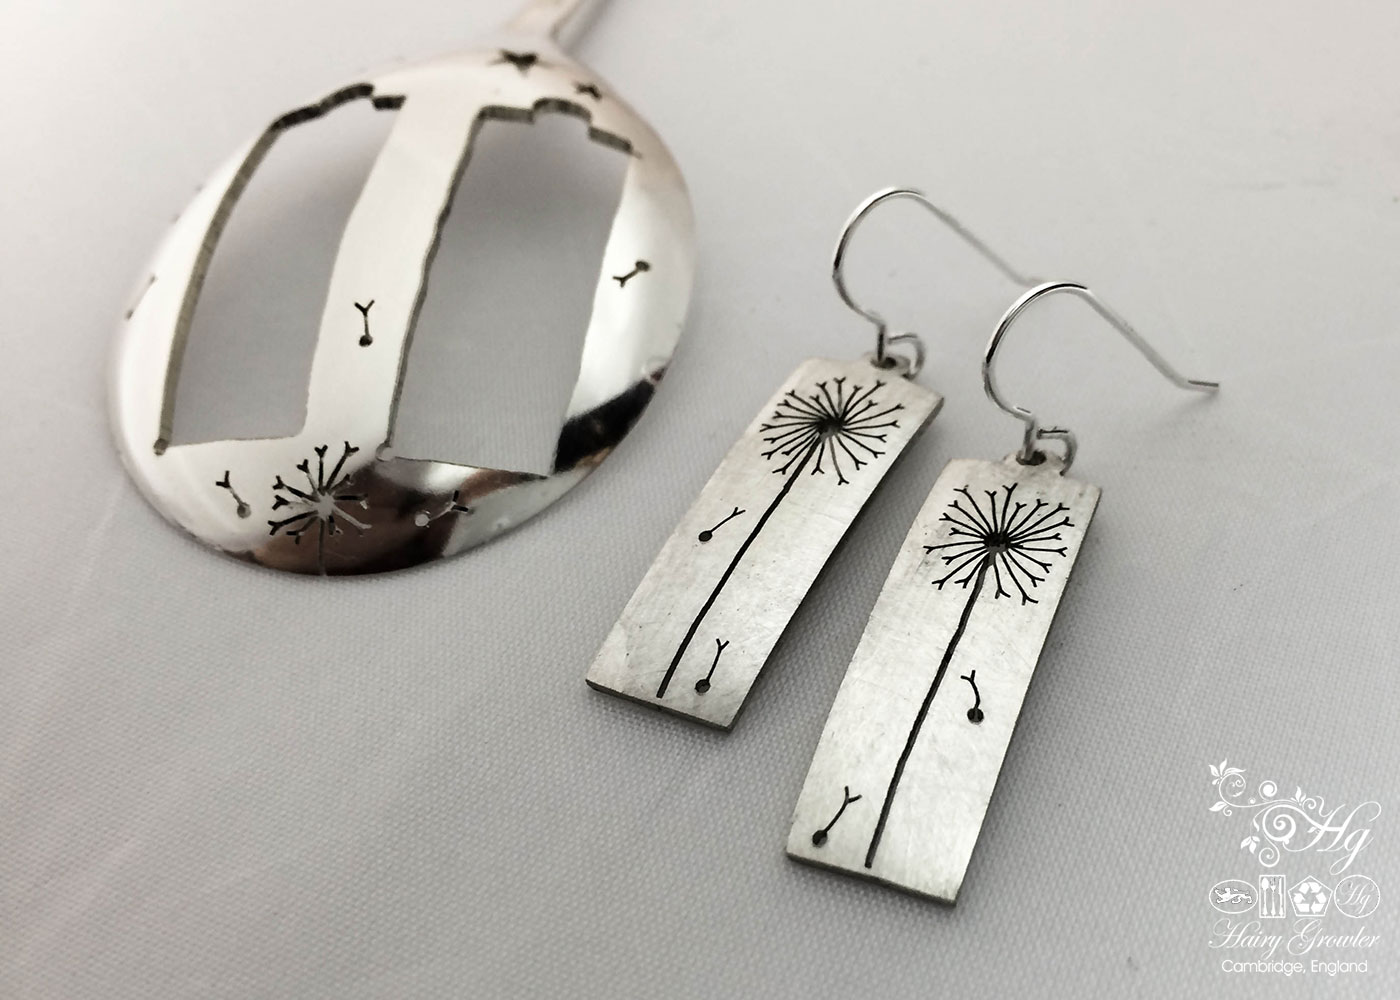 handmade and upcycled vintage flatware spoon dandelion clock earrings